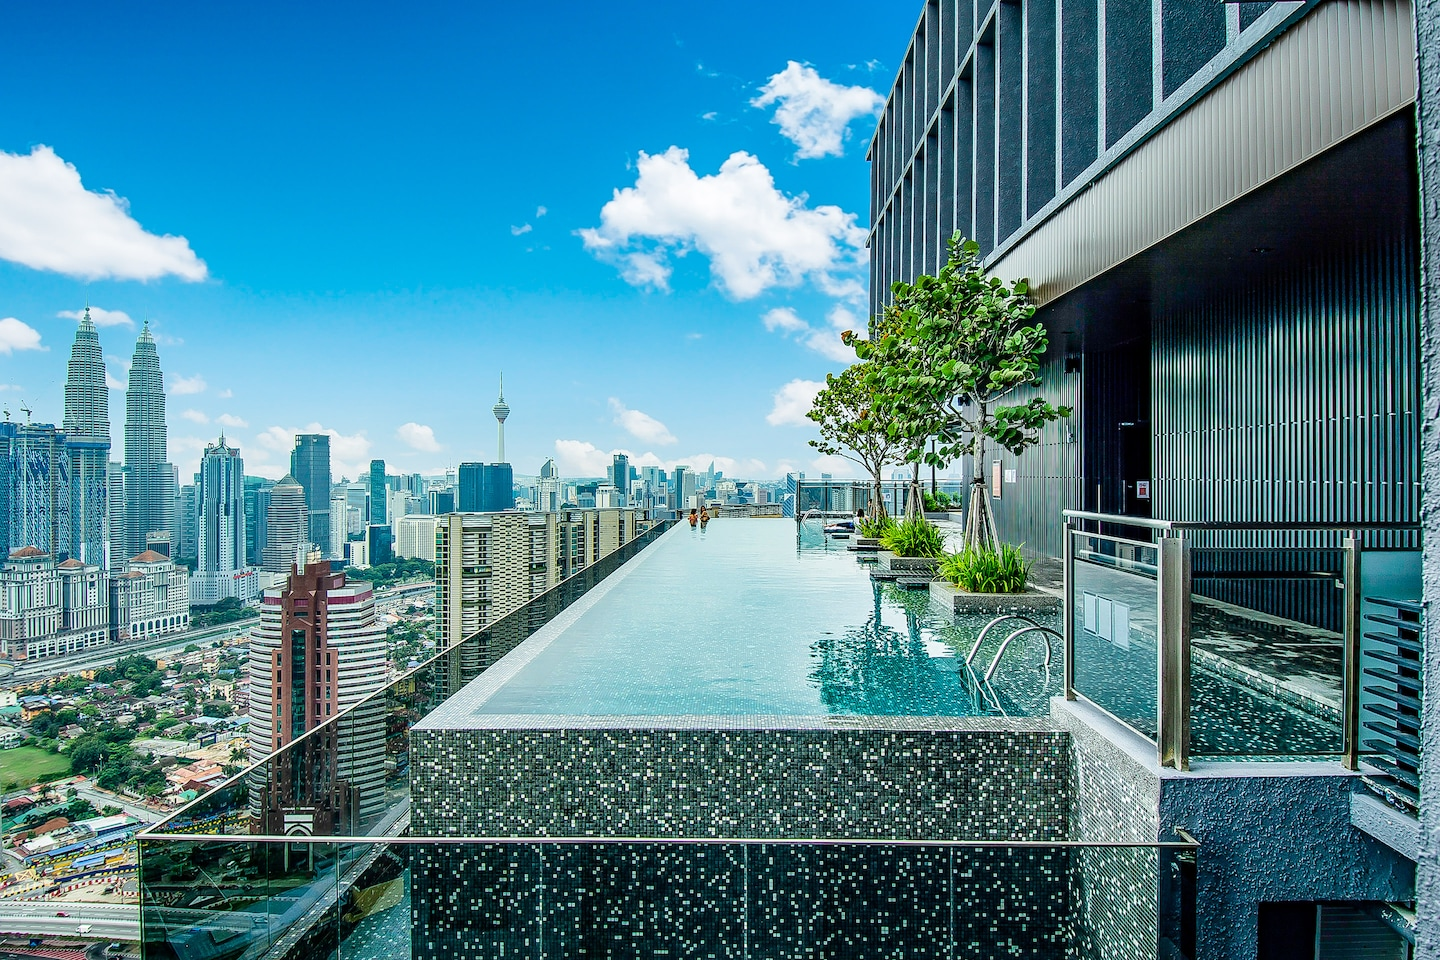 OYO 466 Home Studio Expressionz Suites KL Tower View from Pool -1